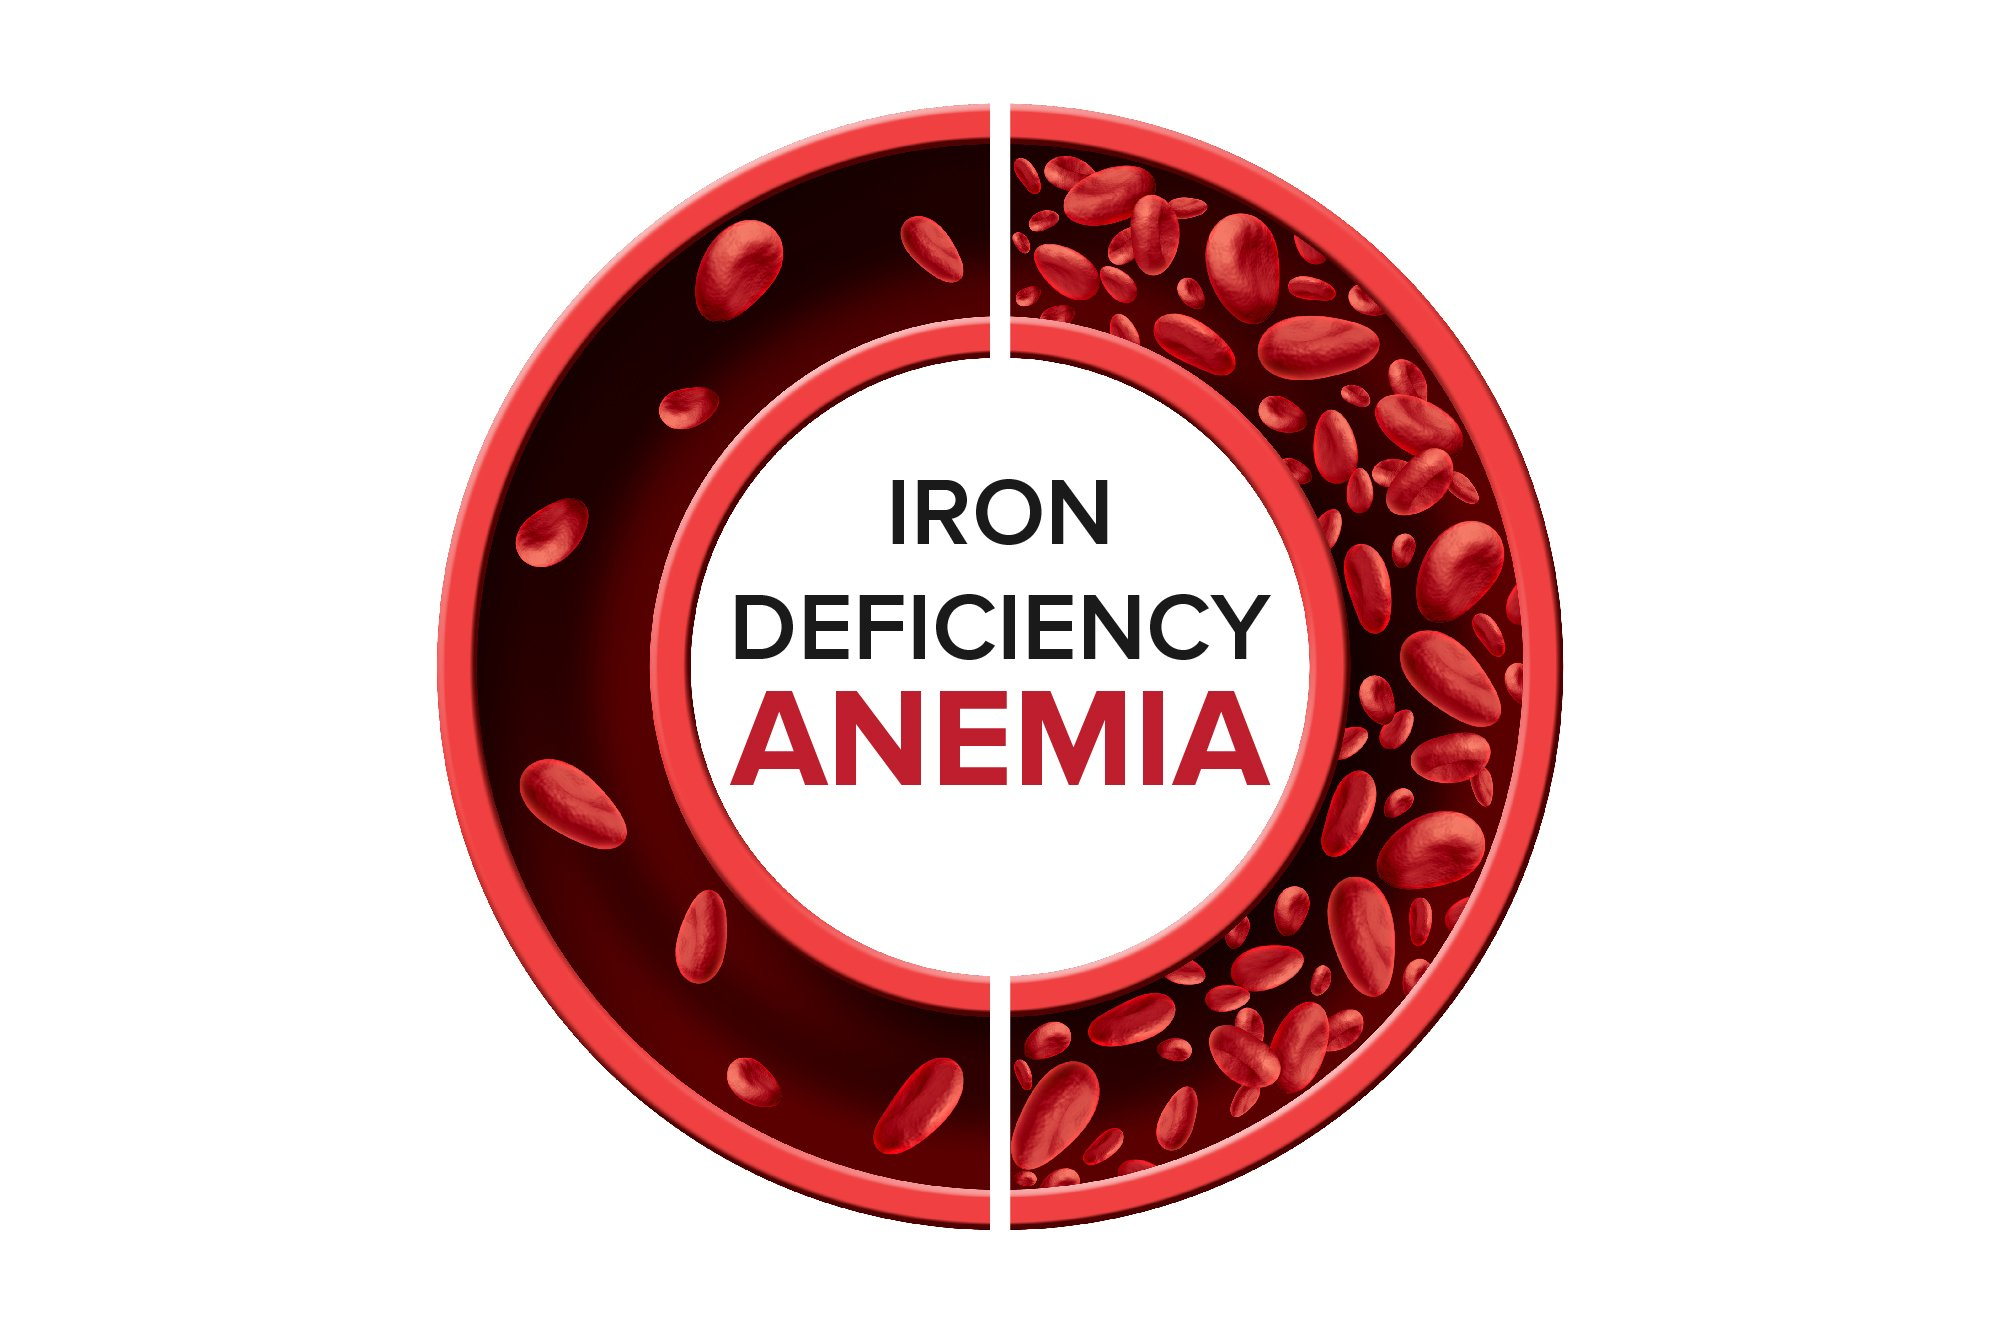 Iron deficiency anemia_Iron Deficiency Anemia